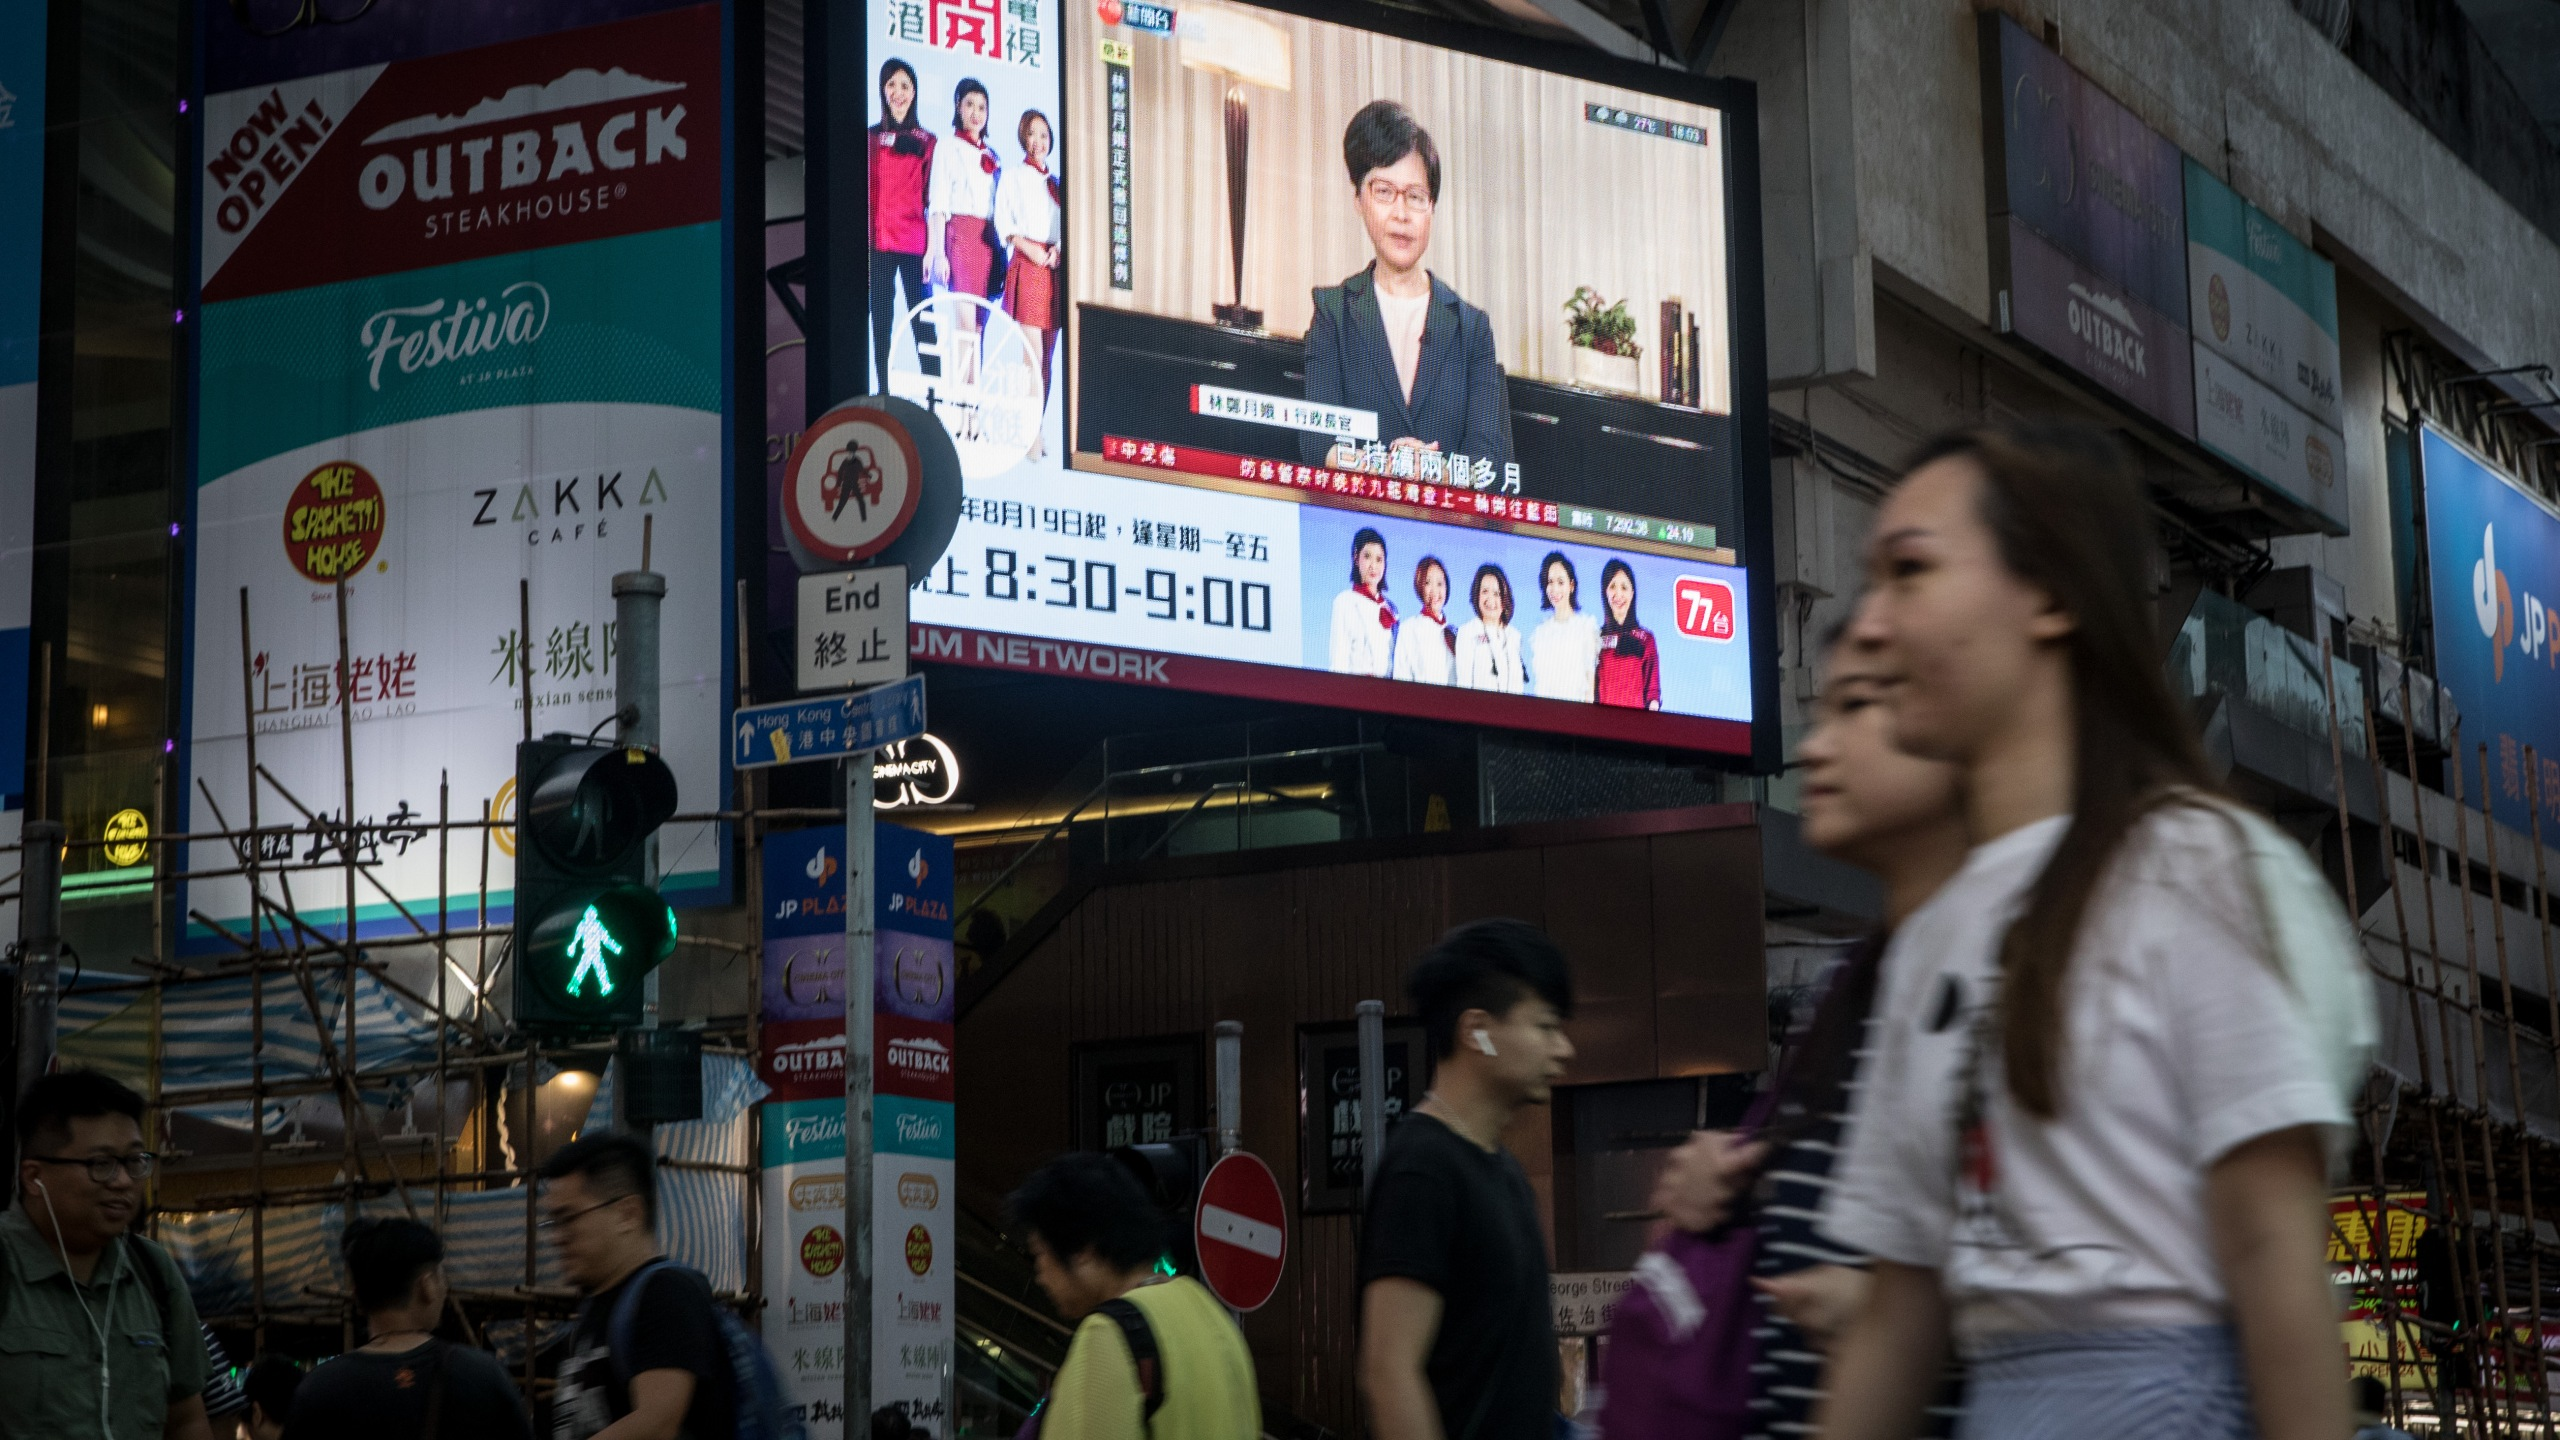 People walk past a big screen replaying Hong Kong Chief Executive Carrie Lam announcing the formal withdrawal of the extradition bill on September 04, 2019 in Hong Kong, China. (Credit: Chris McGrath/Getty Images)